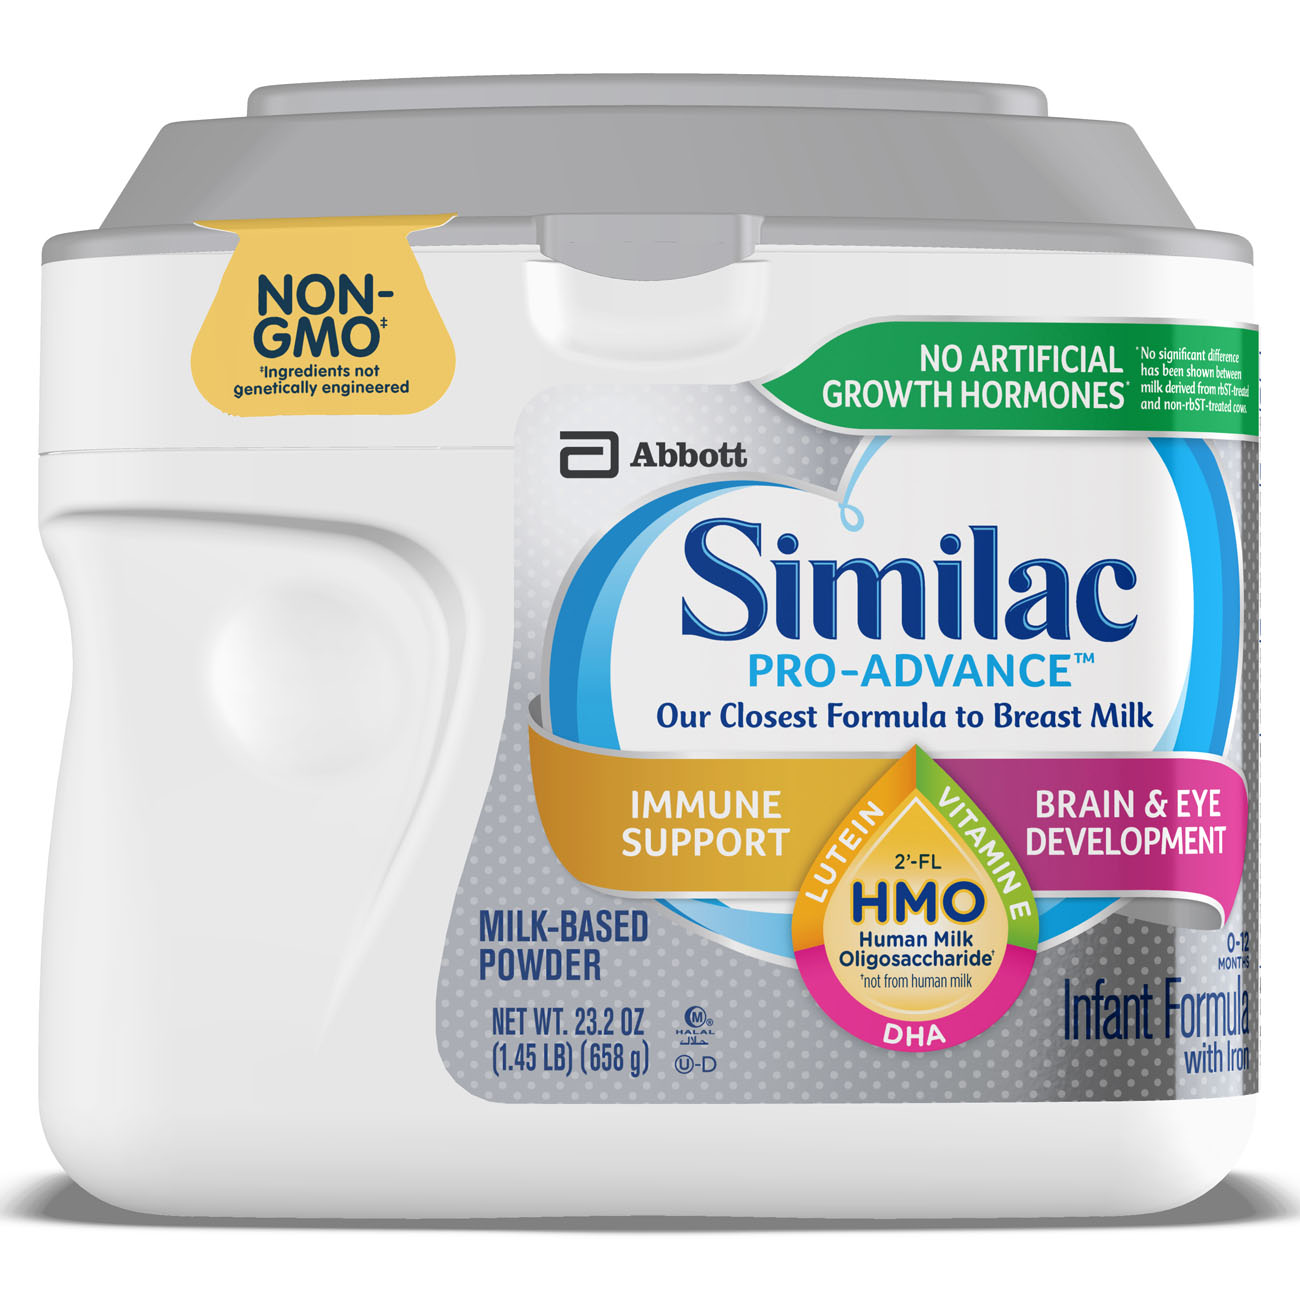 Similac Pro-Advance Non-GMO with 2'-FL HMO Infant Formula with Iron for Immune Support, Baby Formula 23.2 oz Tubs (Pack of 4)